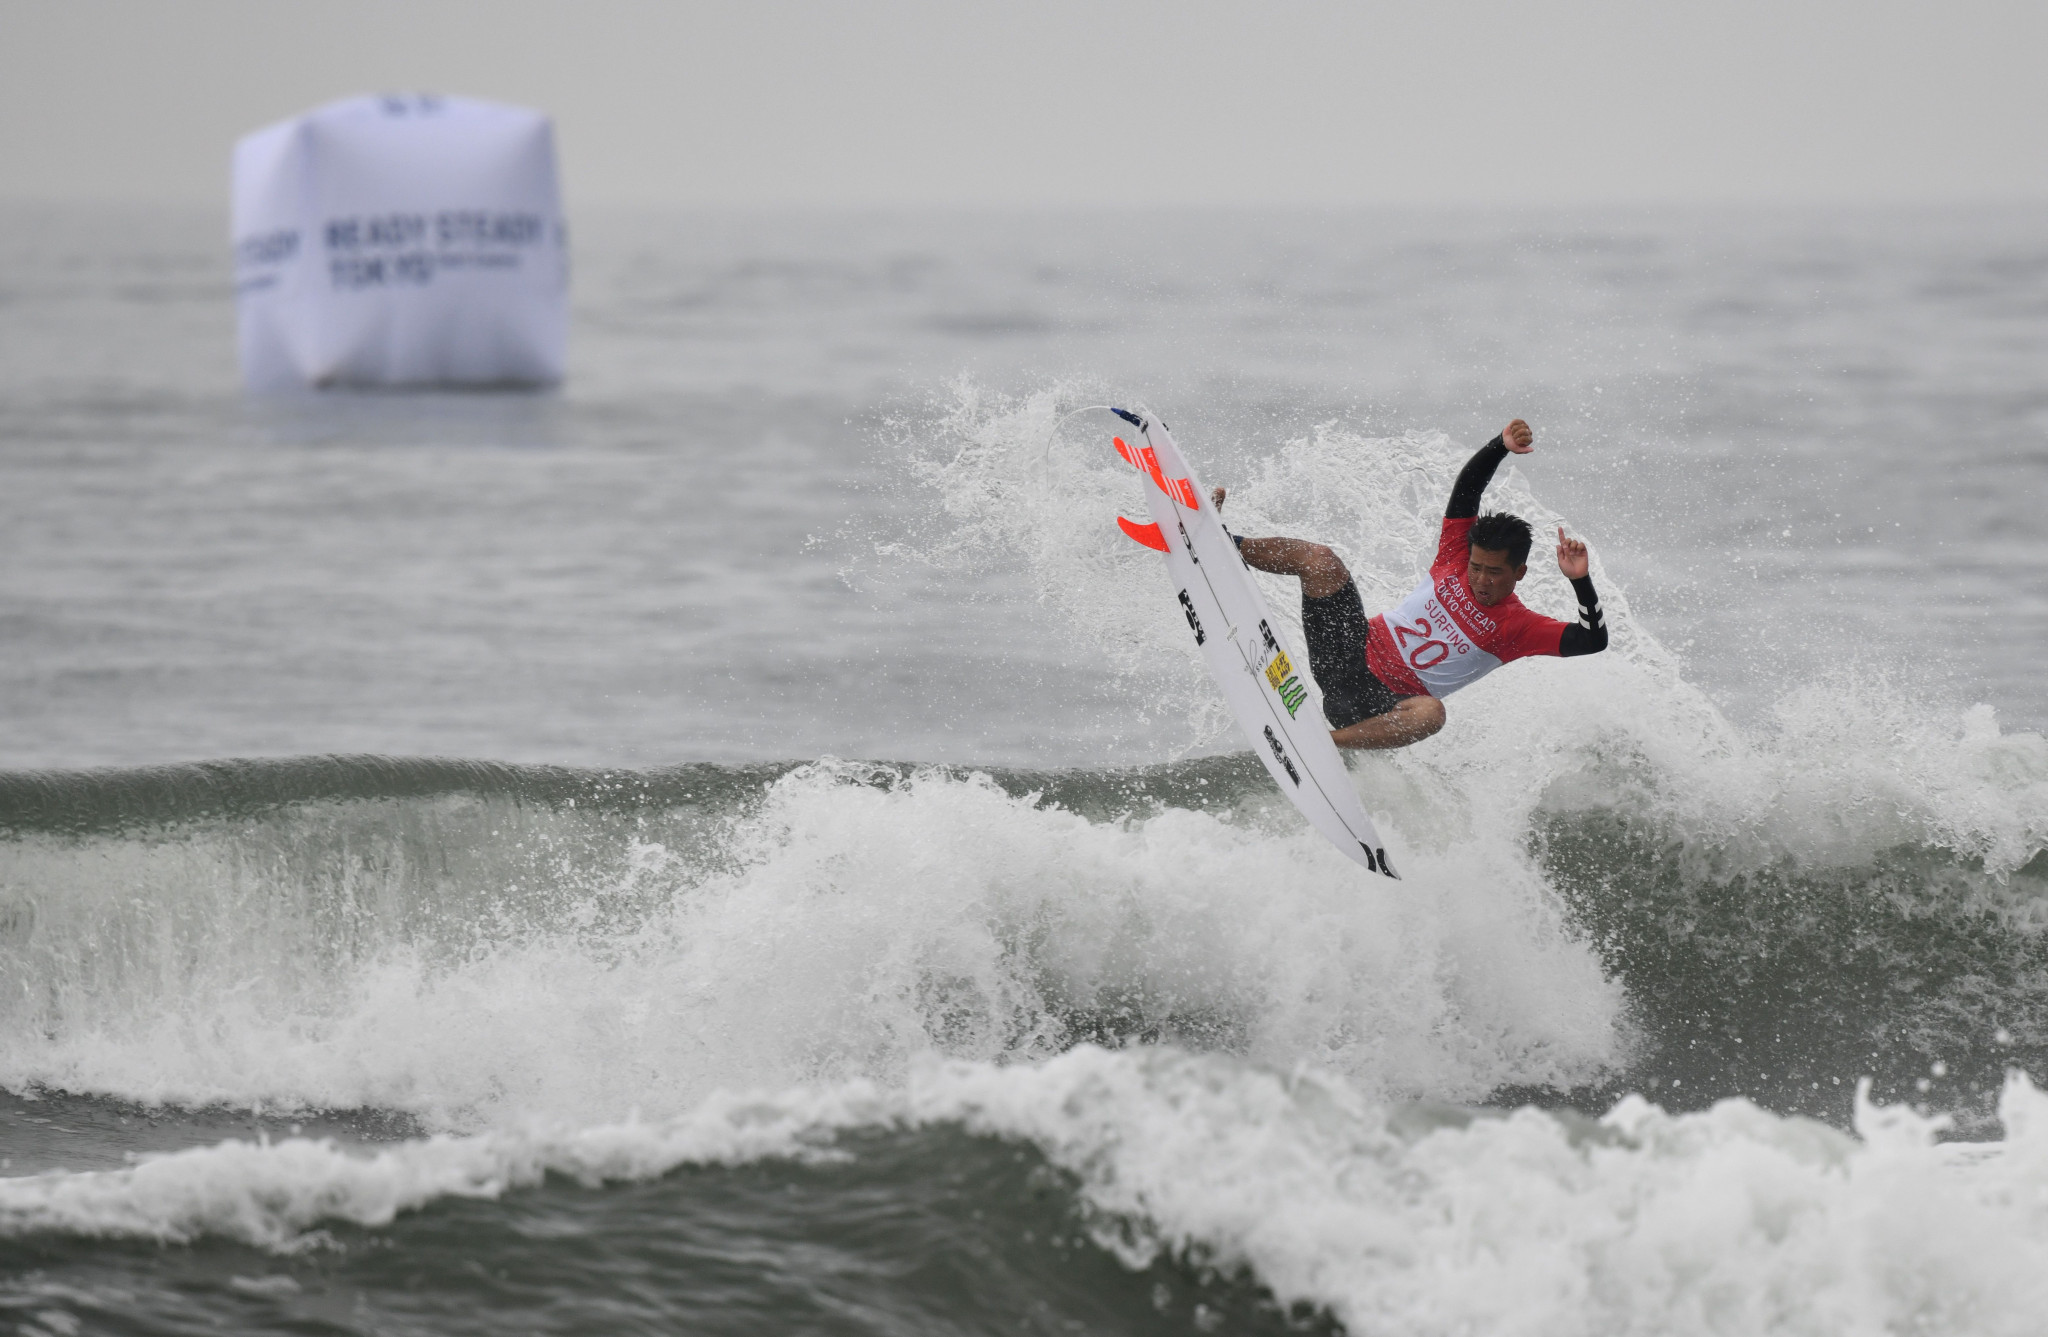 Surfing removed from ANOC World Beach Games in Doha with separate competition to be scheduled